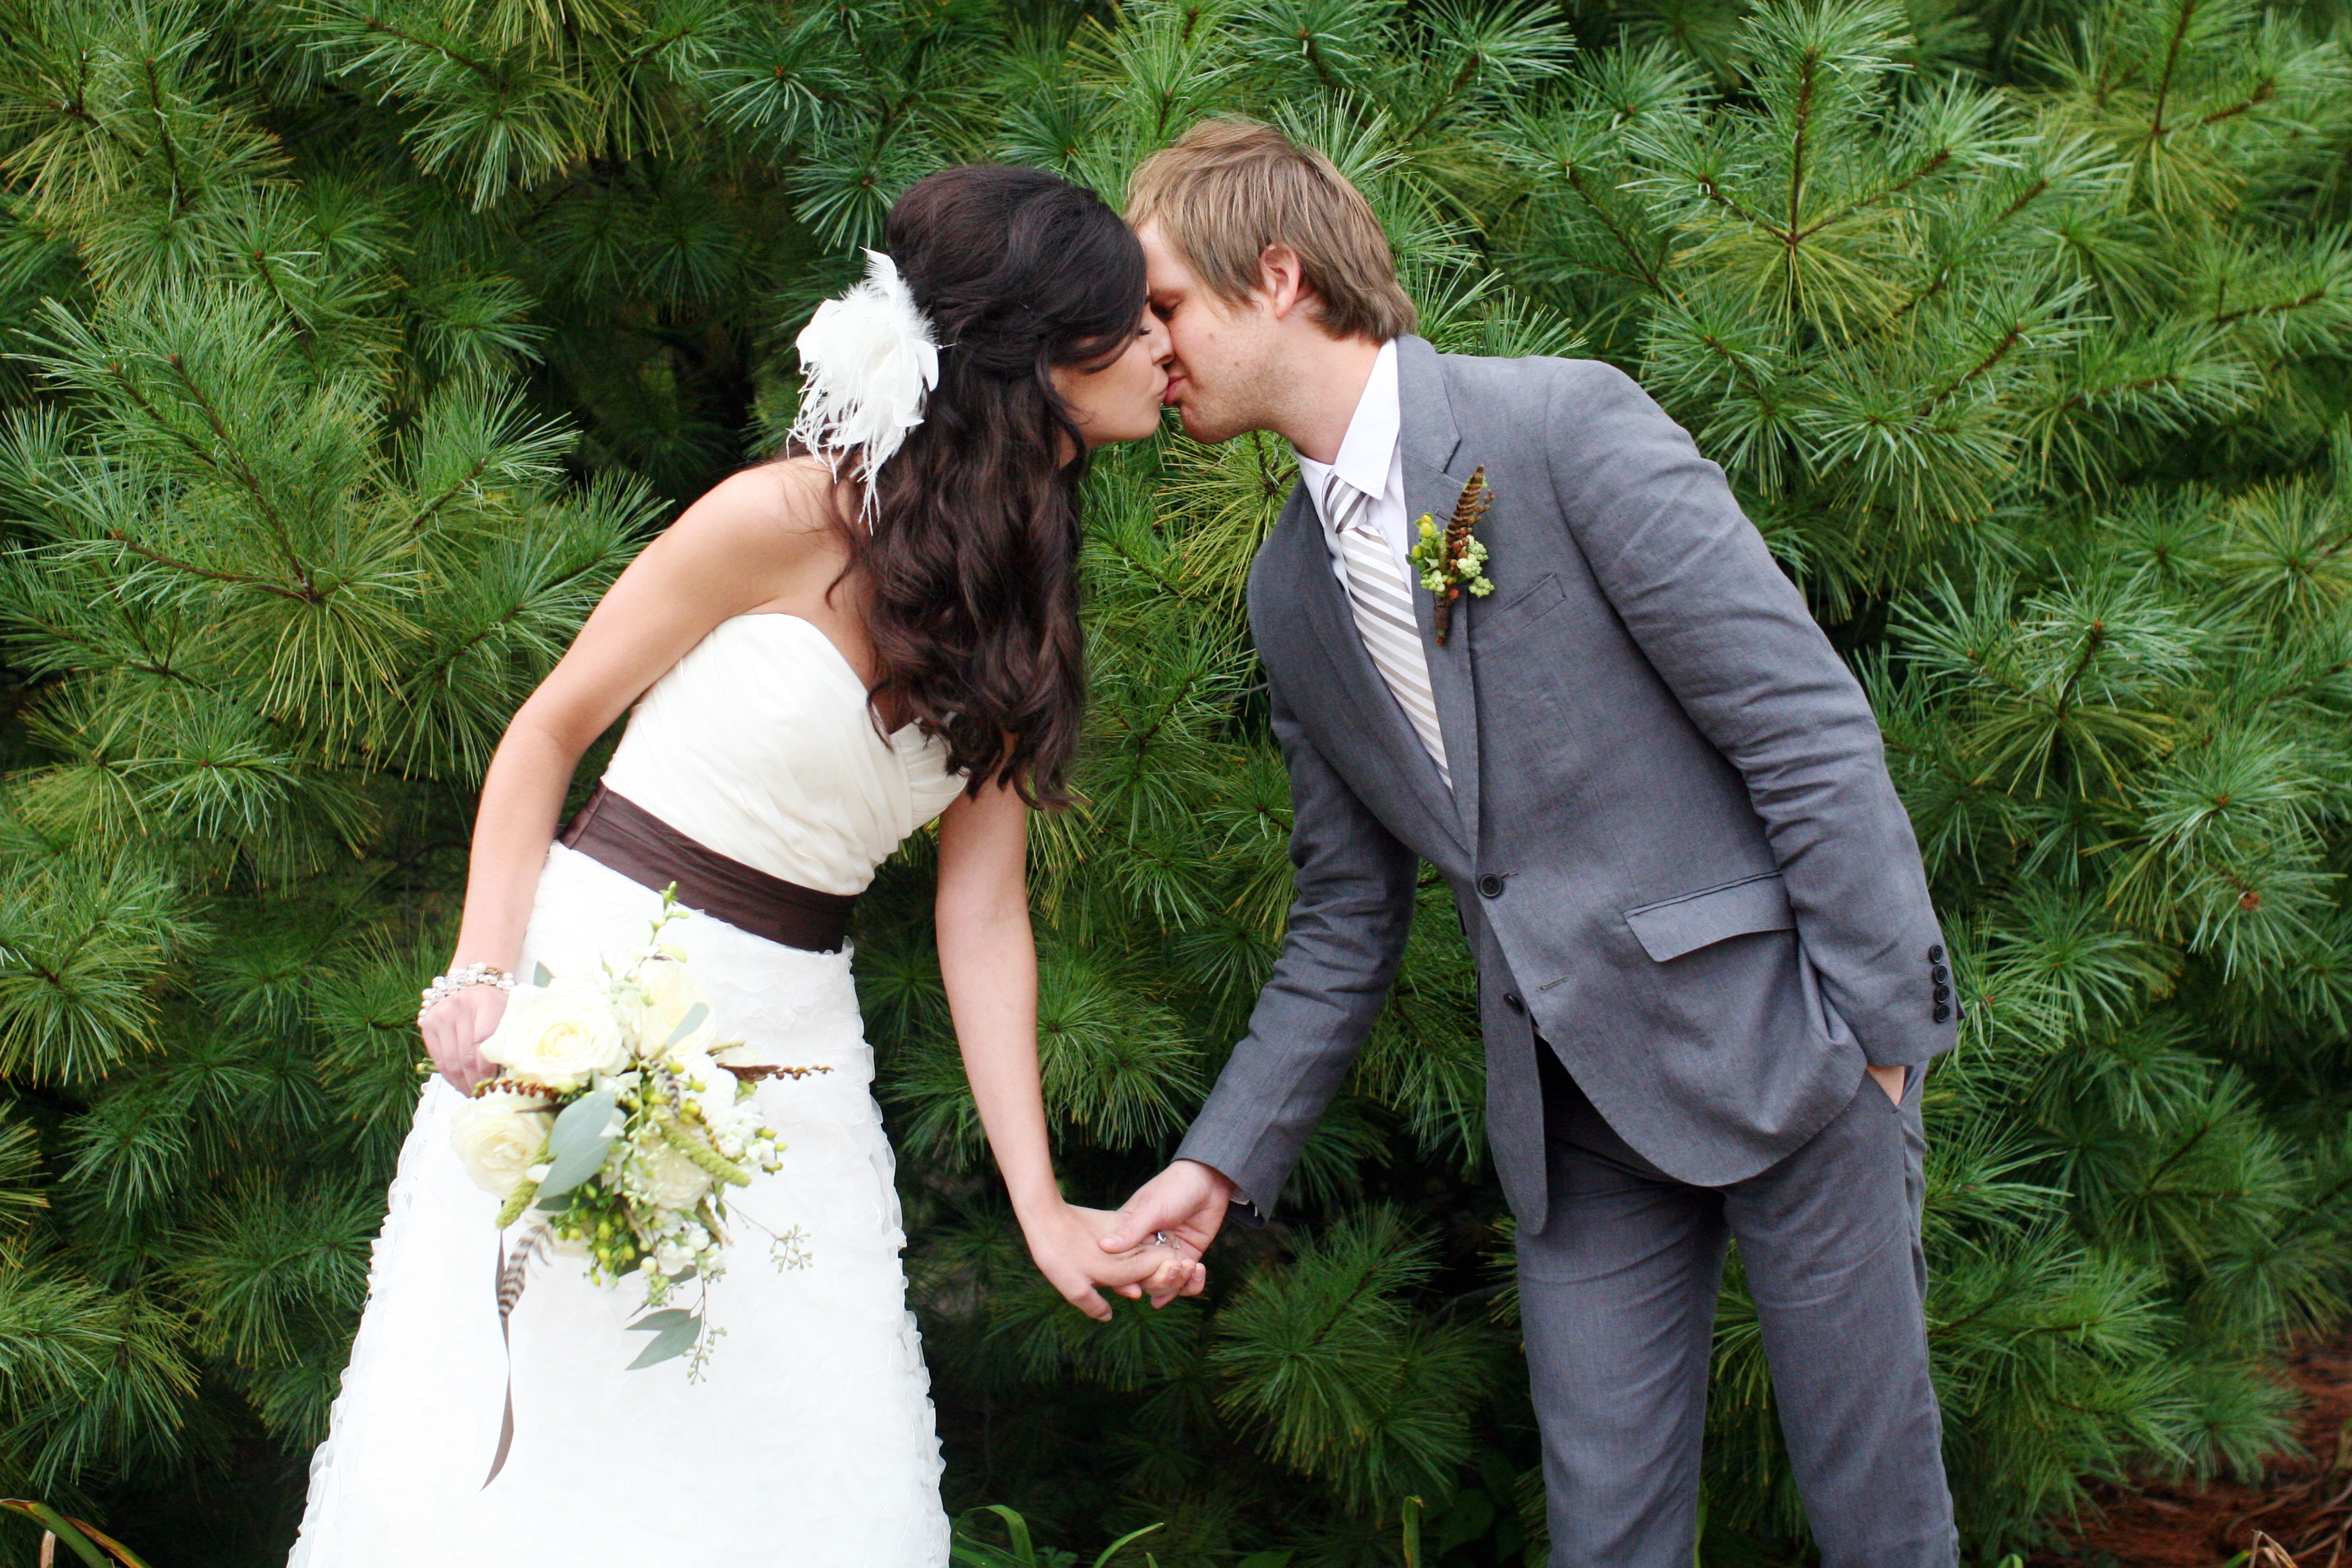 Fall, Rustic, Bride, Groom, Kiss, Courtney sawyer